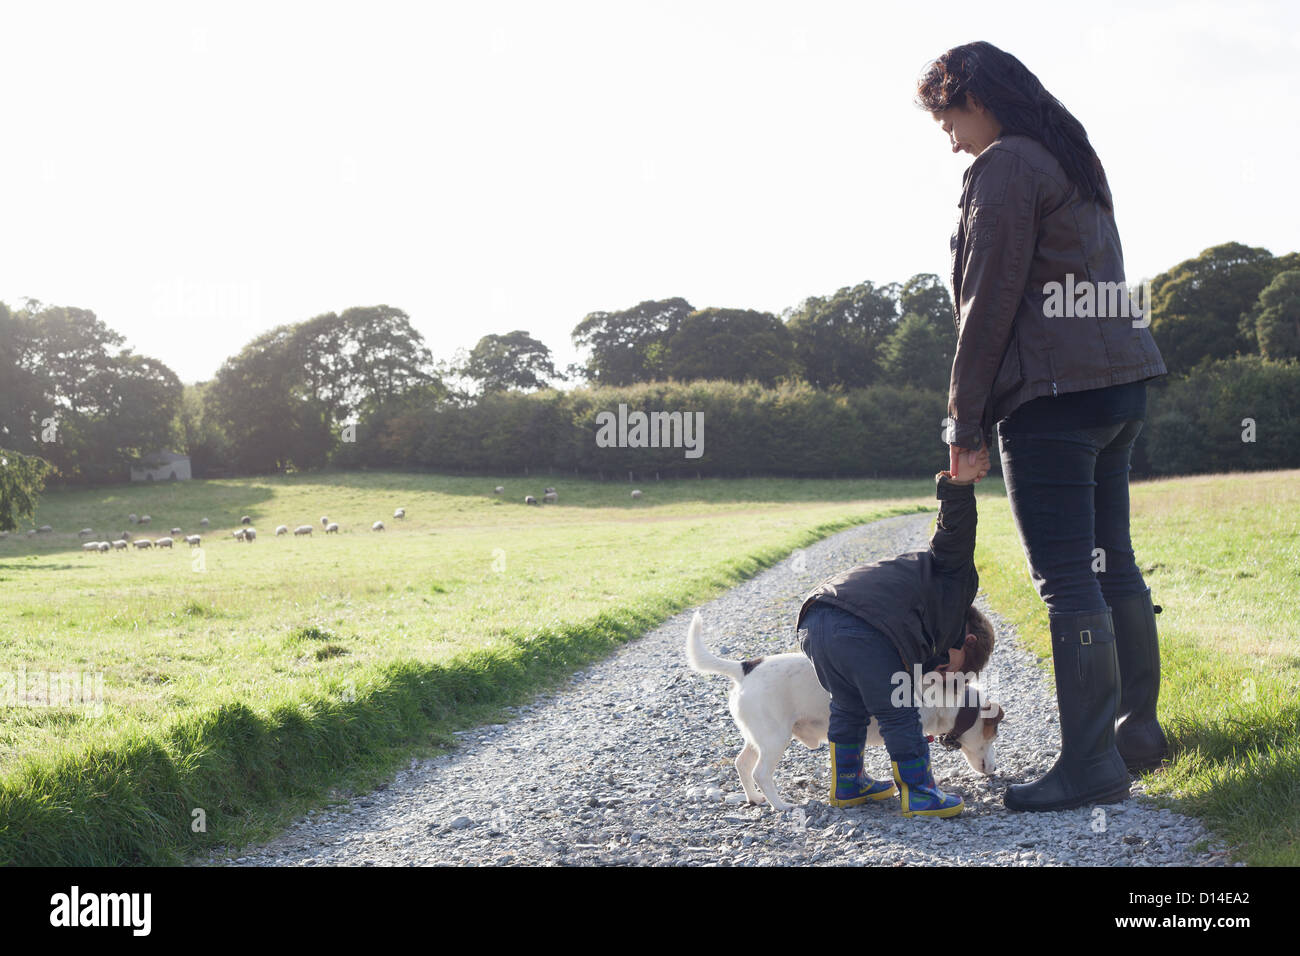 Mother and son walking dog on dirt road - Stock Image